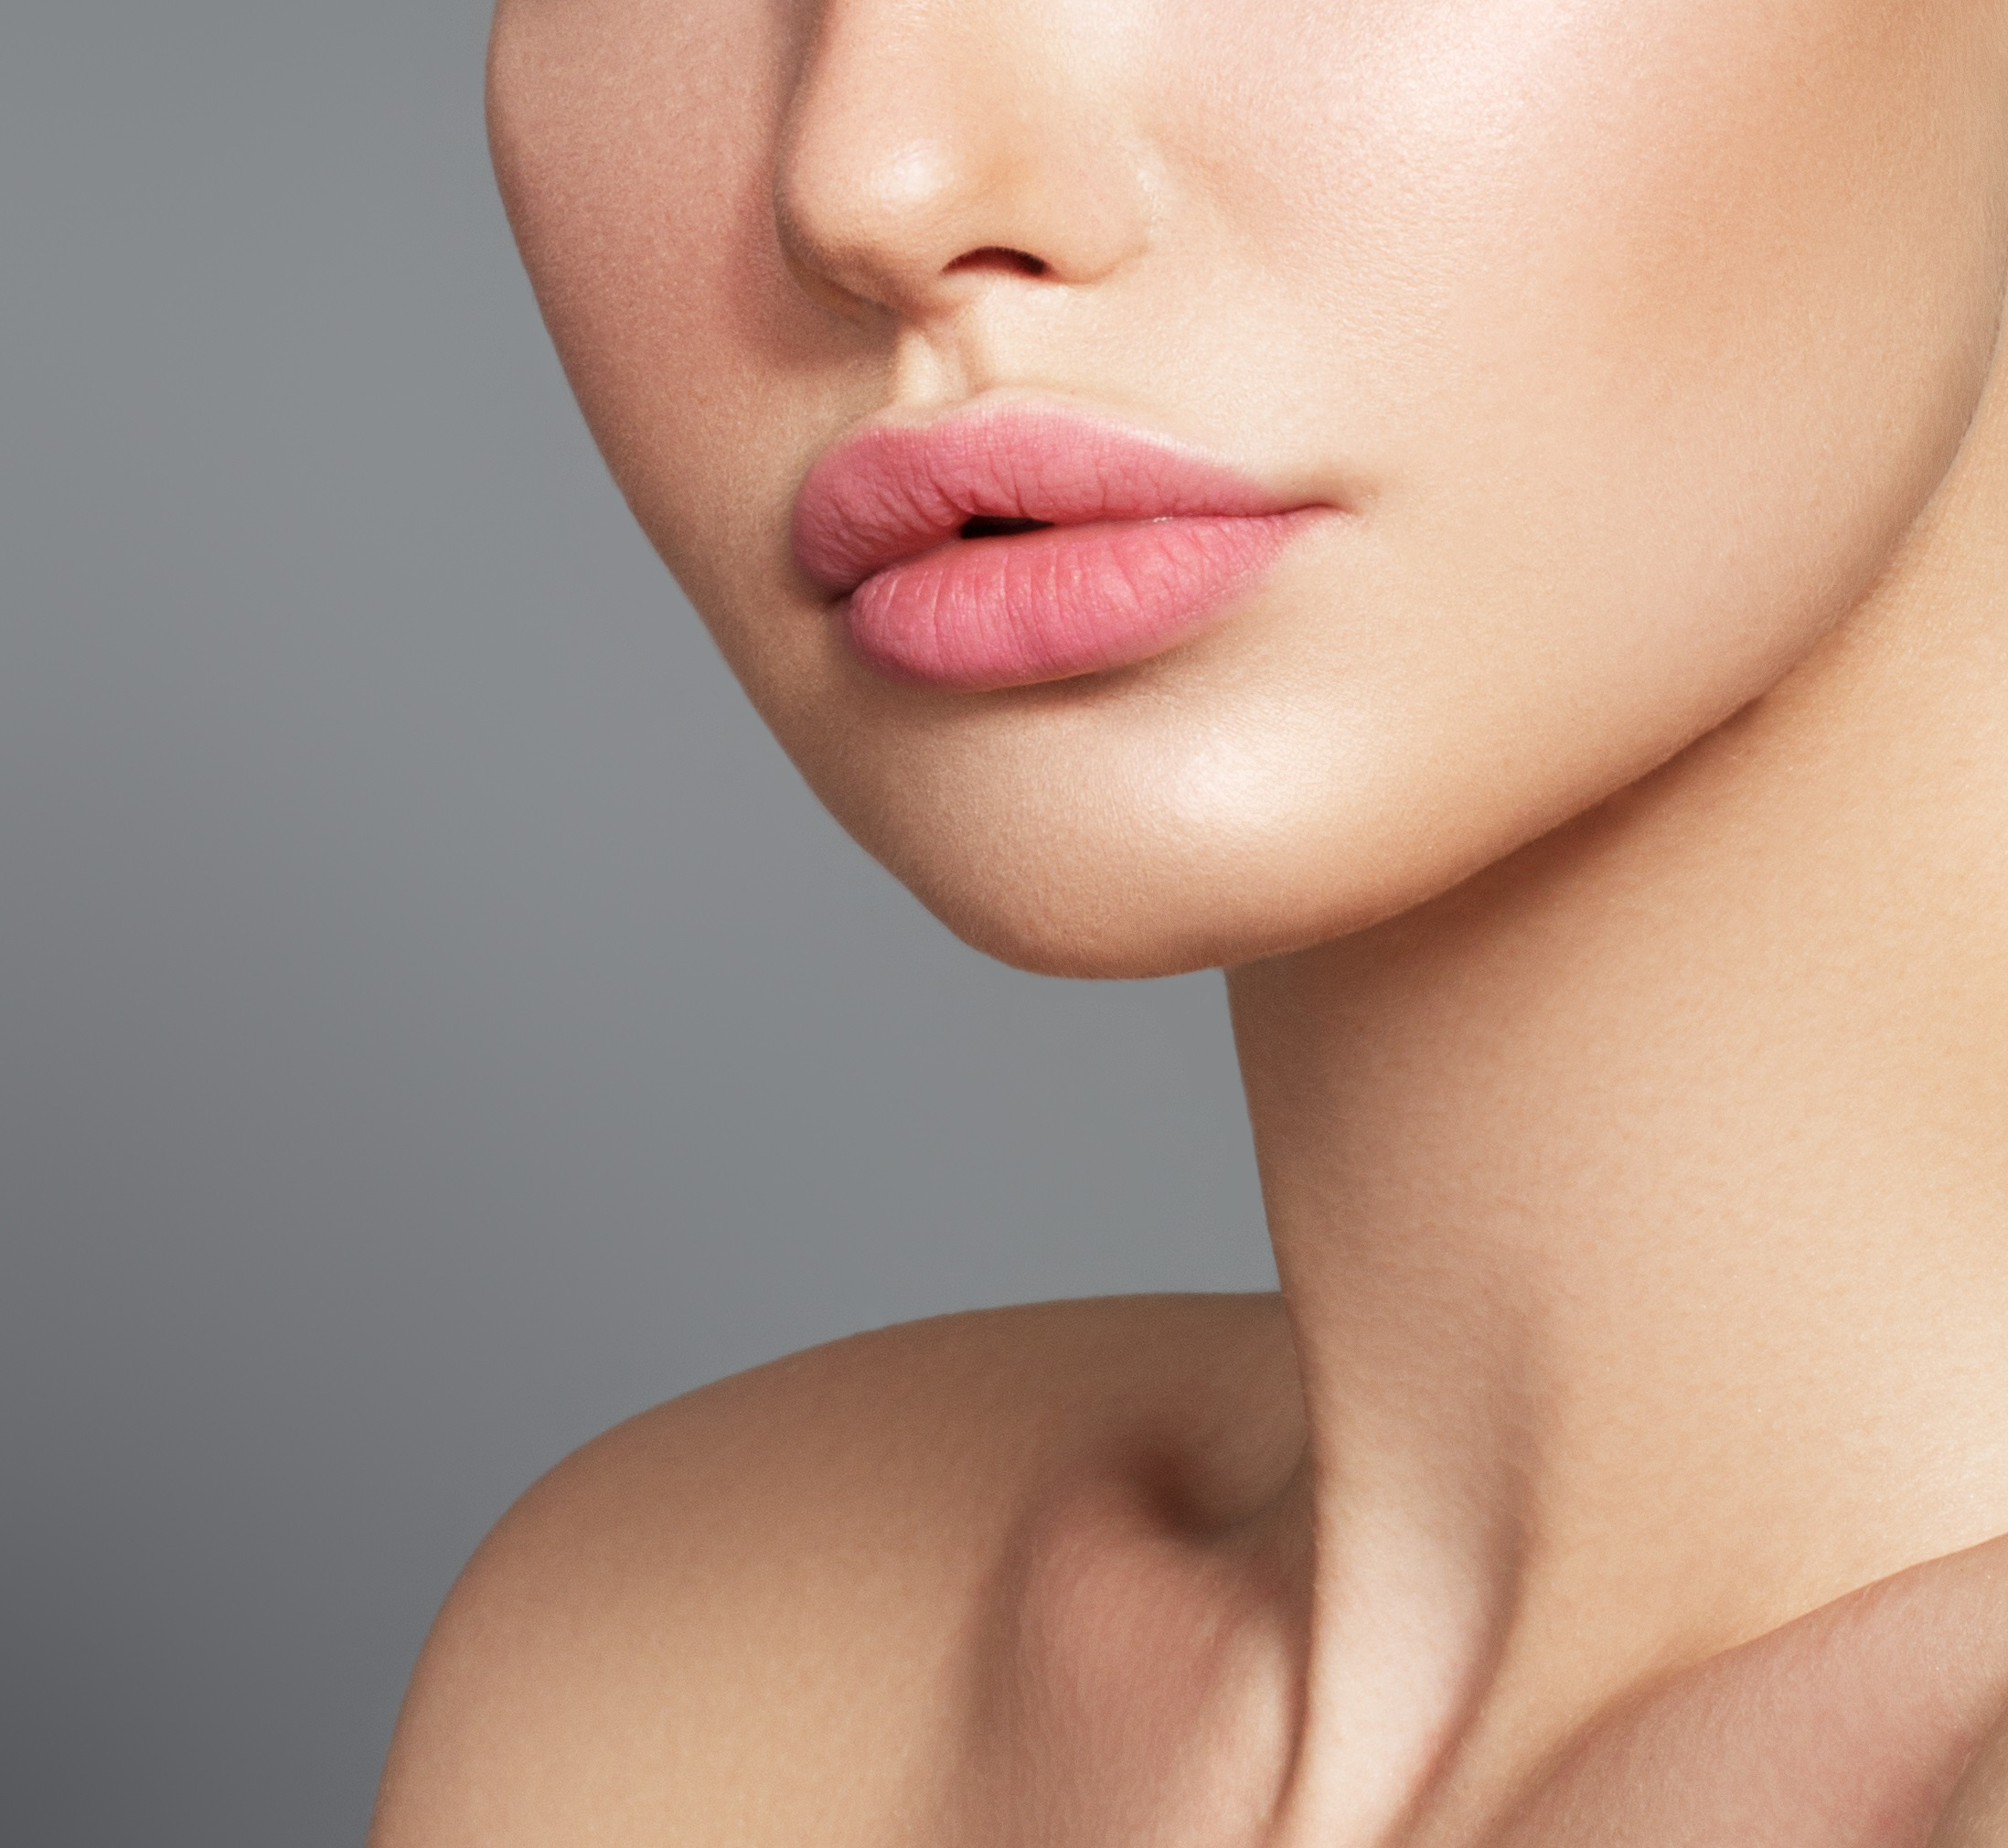 5 things you should know before Lip Filler Injections